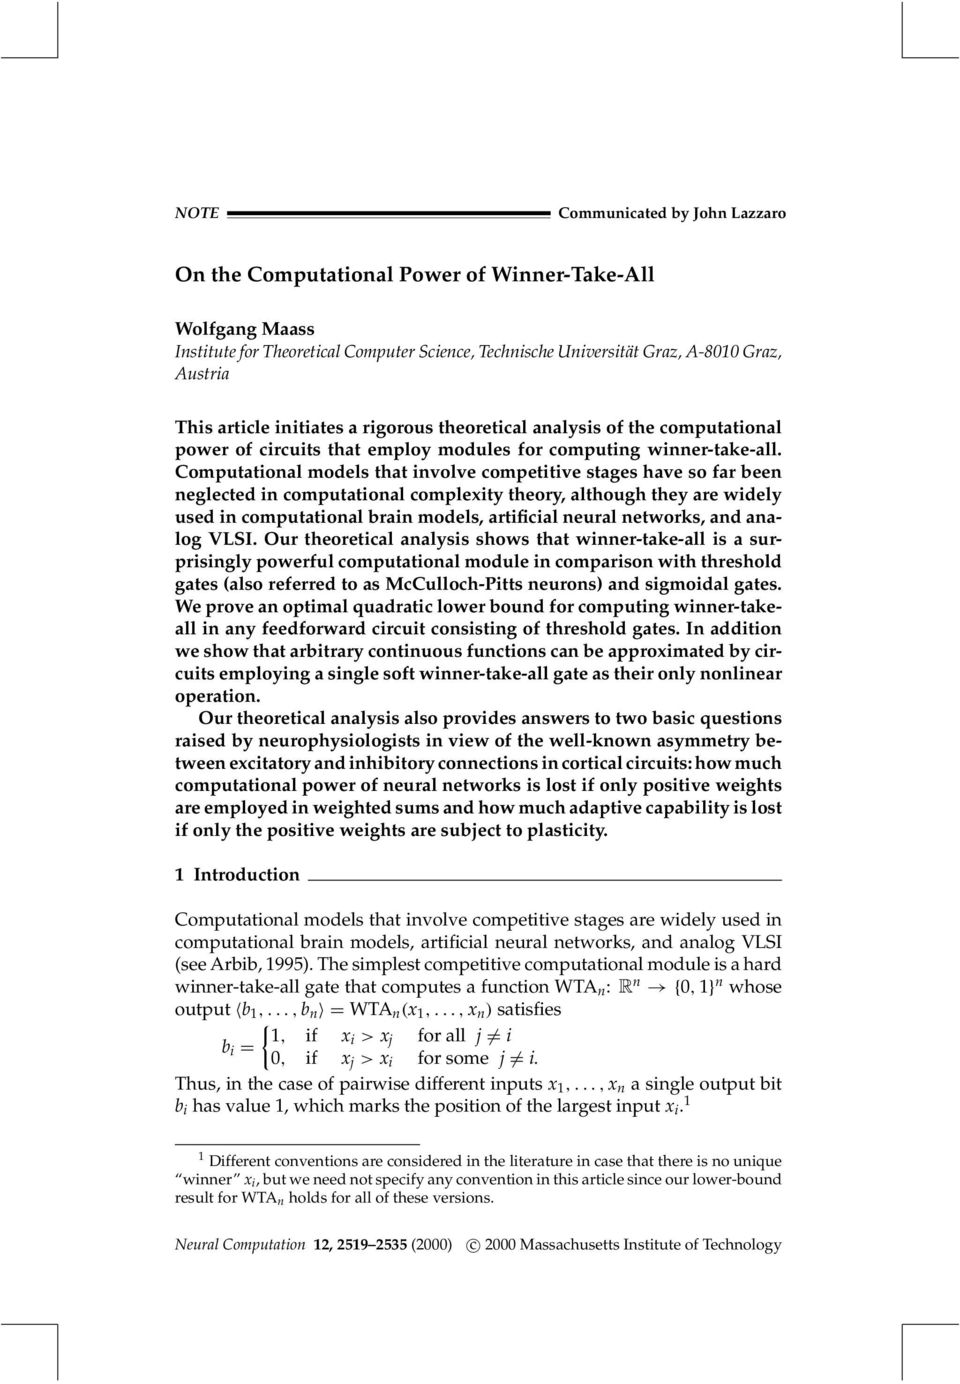 Computational models that involve competitive stages have so far been neglected in computational complexity theory, although they are widely used in computational brain models, artificial neural